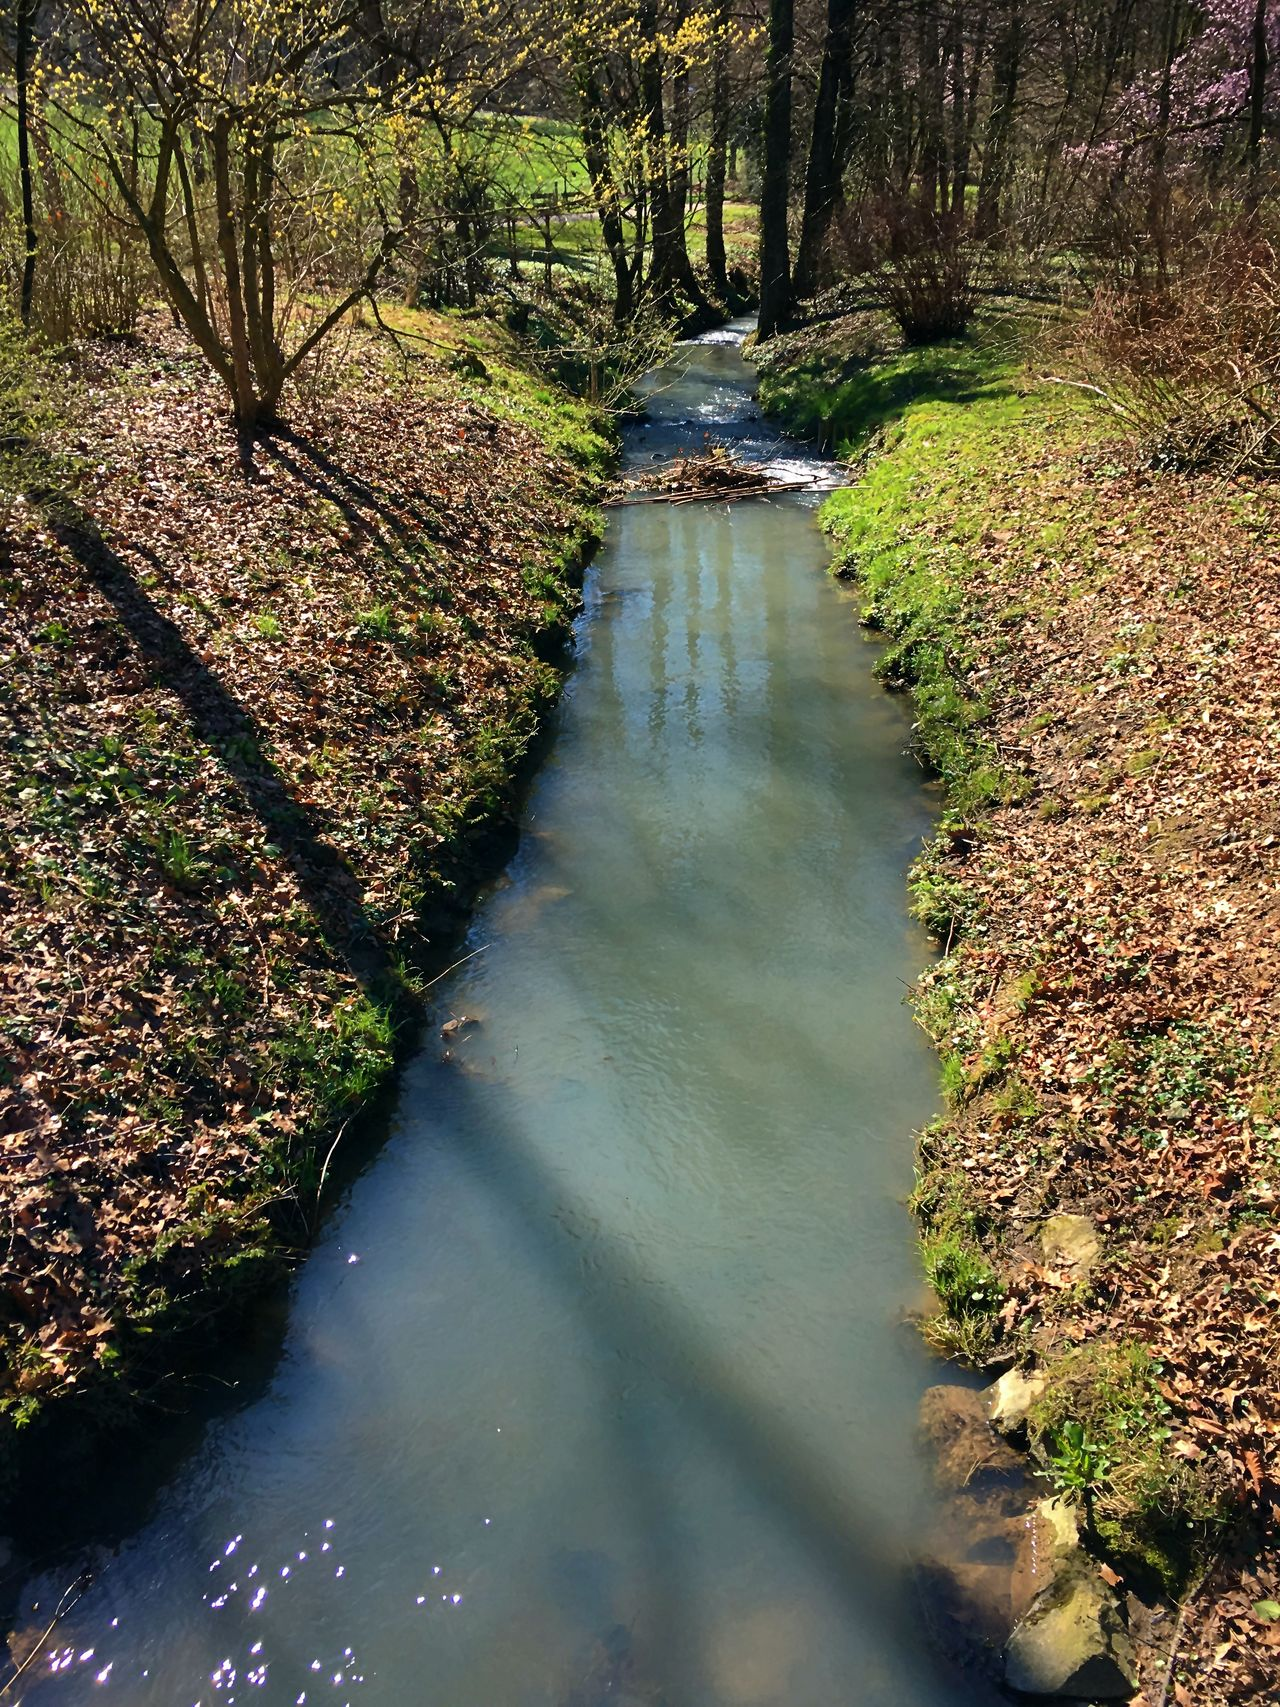 Autumn Beauty In Nature Day Forest Landscape Nature Nature Nature Collection Nature Photography Nature_collection Naturelover Naturelovers Naturephotography No People Outdoors River River Collection Riverscape Riverside Scenics Stream - Flowing Water Tranquil Scene Tranquility Tree Water